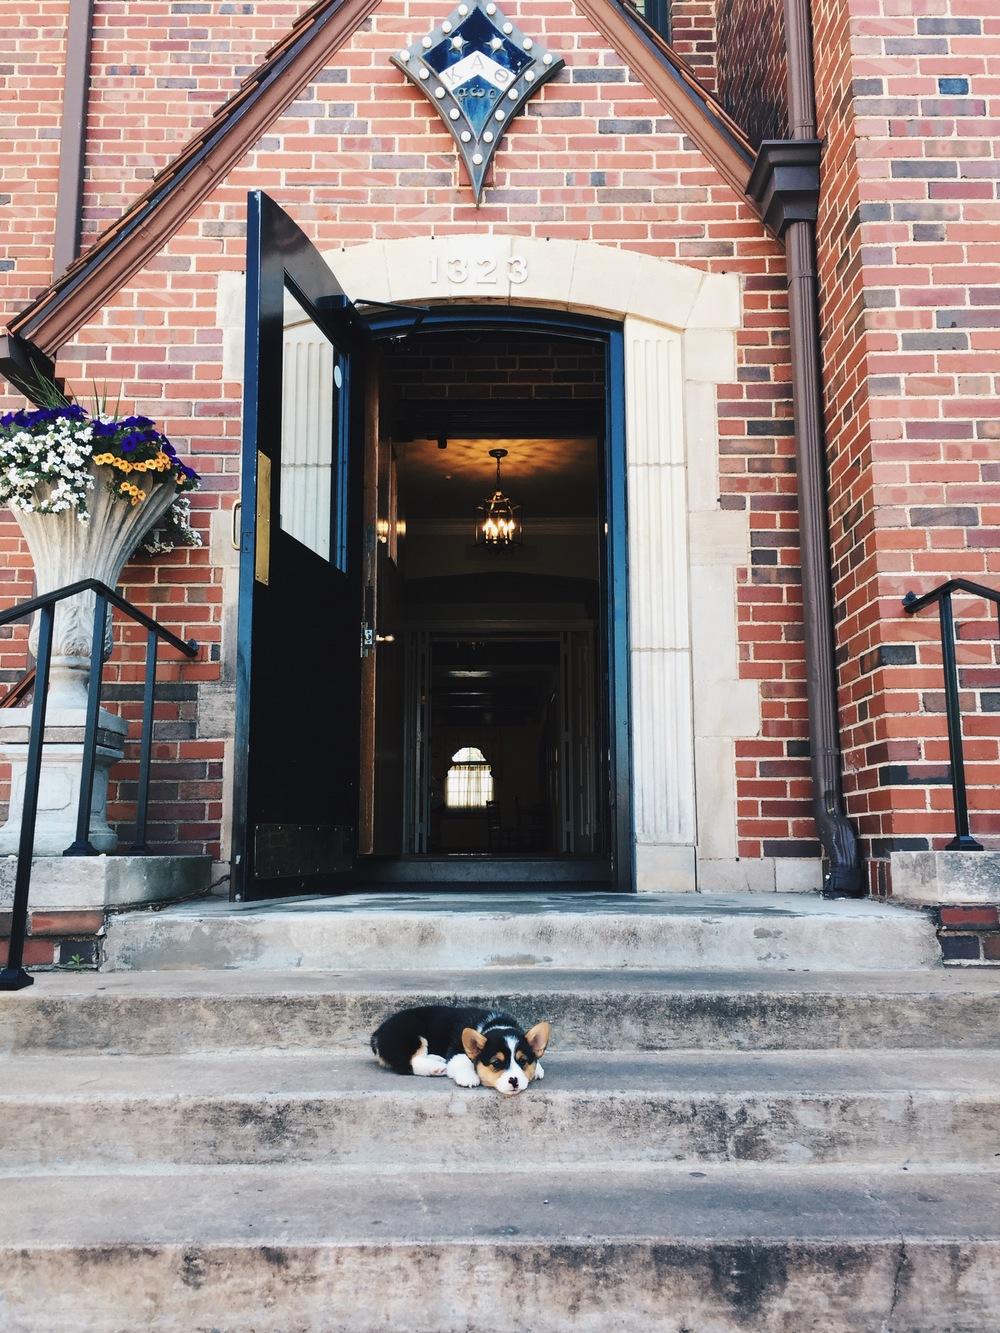 Hank came to visit Stillwater and gave us this perfect photo opportunity. He knows what I like.